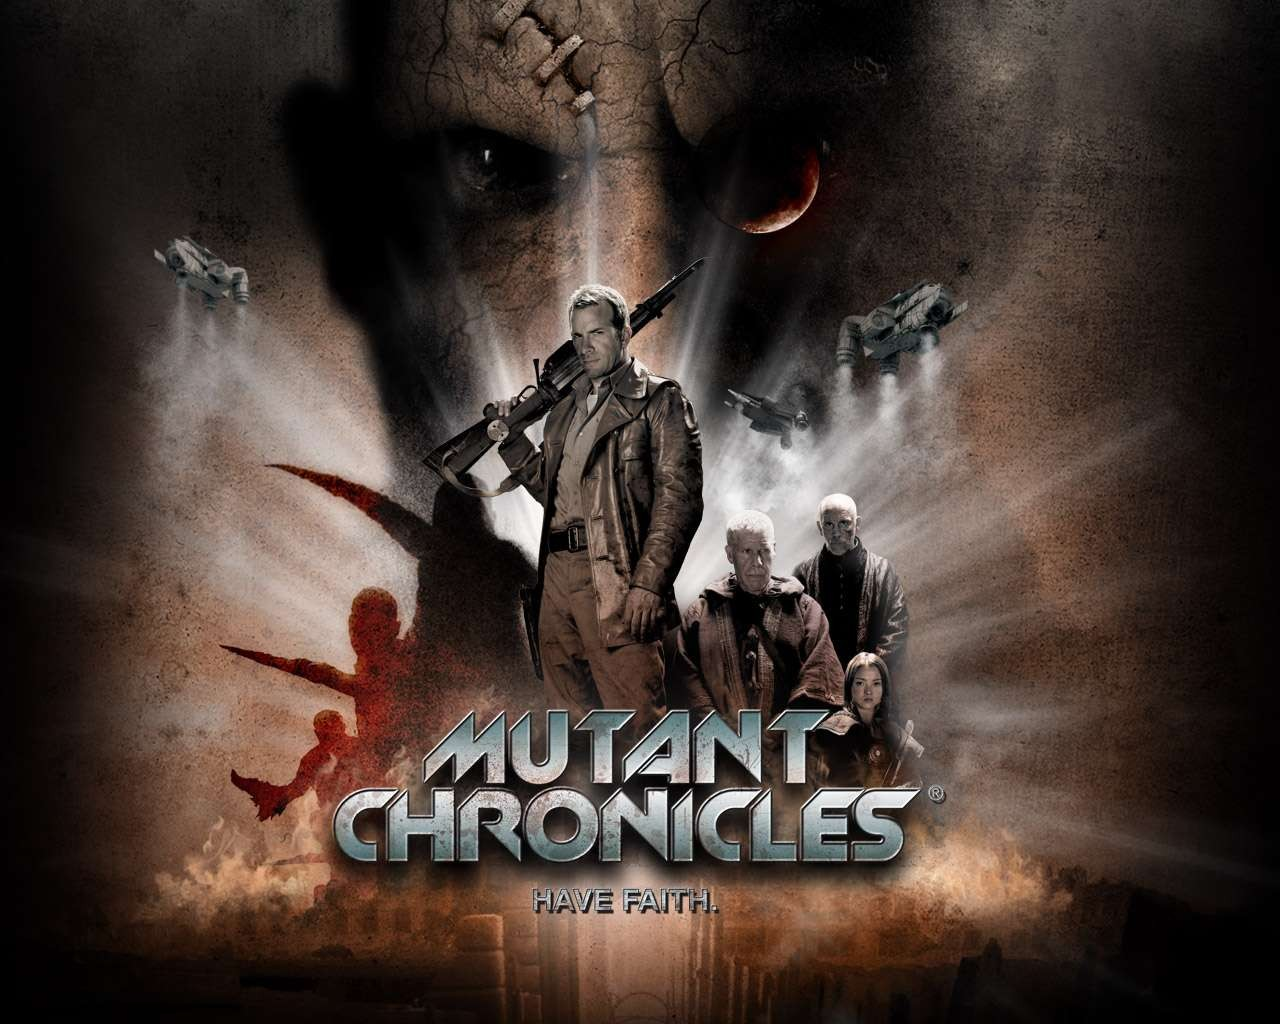 Un wallpaper del film The Mutant Chronicles